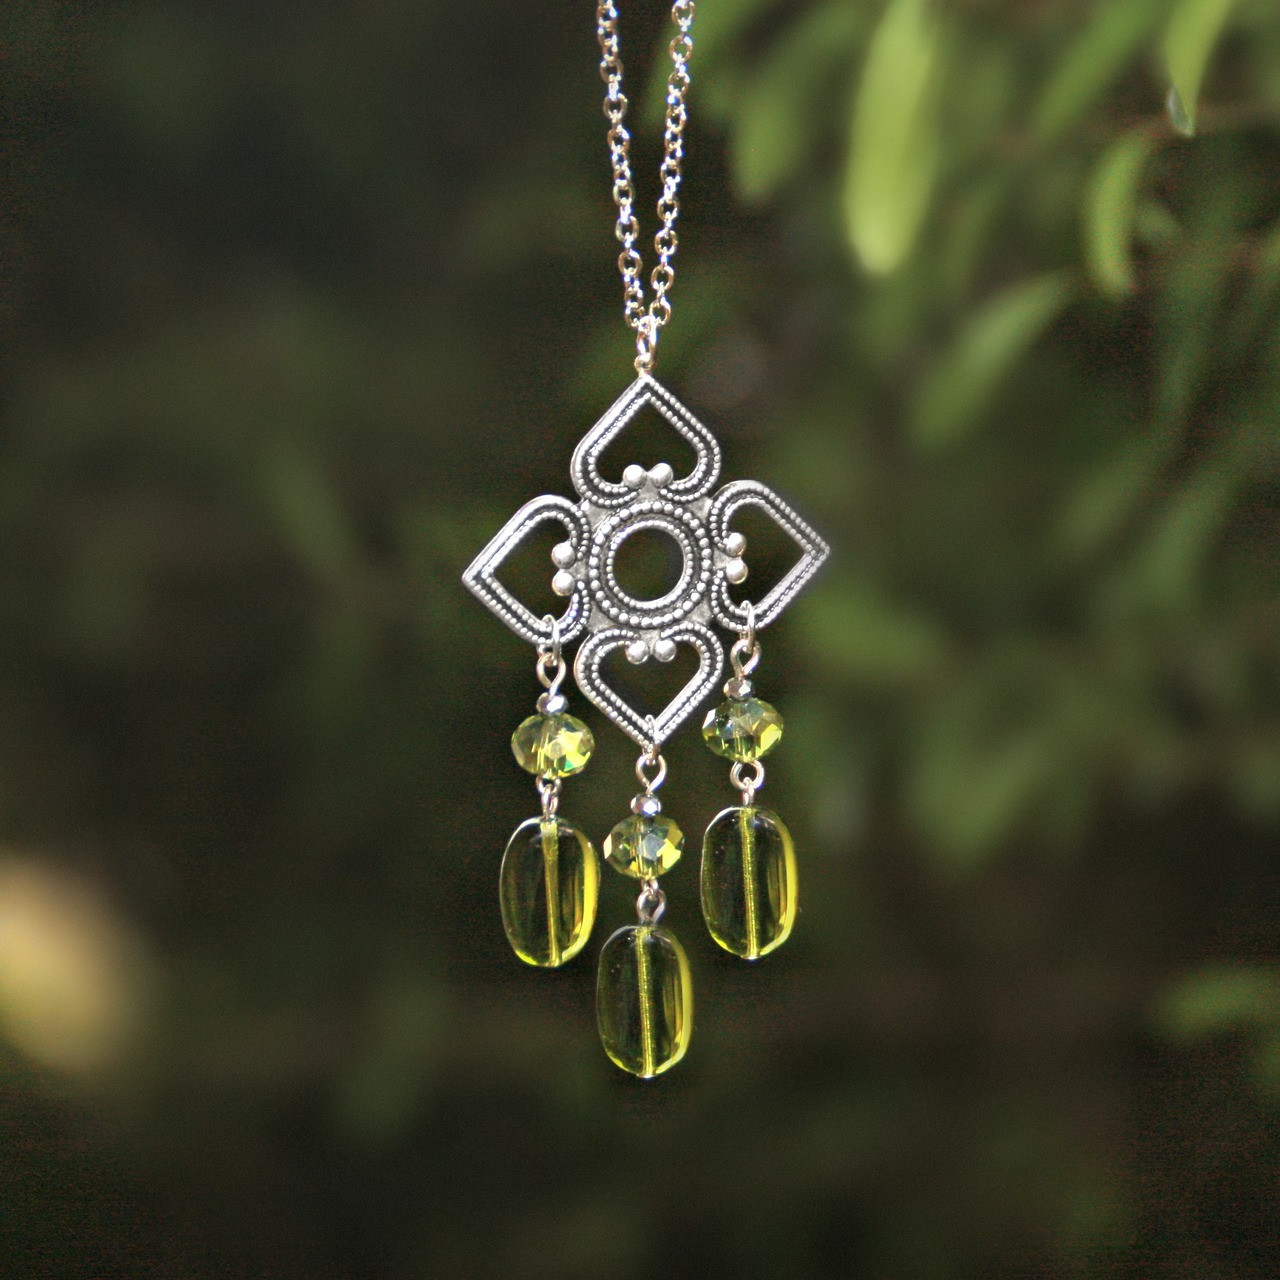 IS-799  One of the colors for Spring 2019 Green Necklace Divine